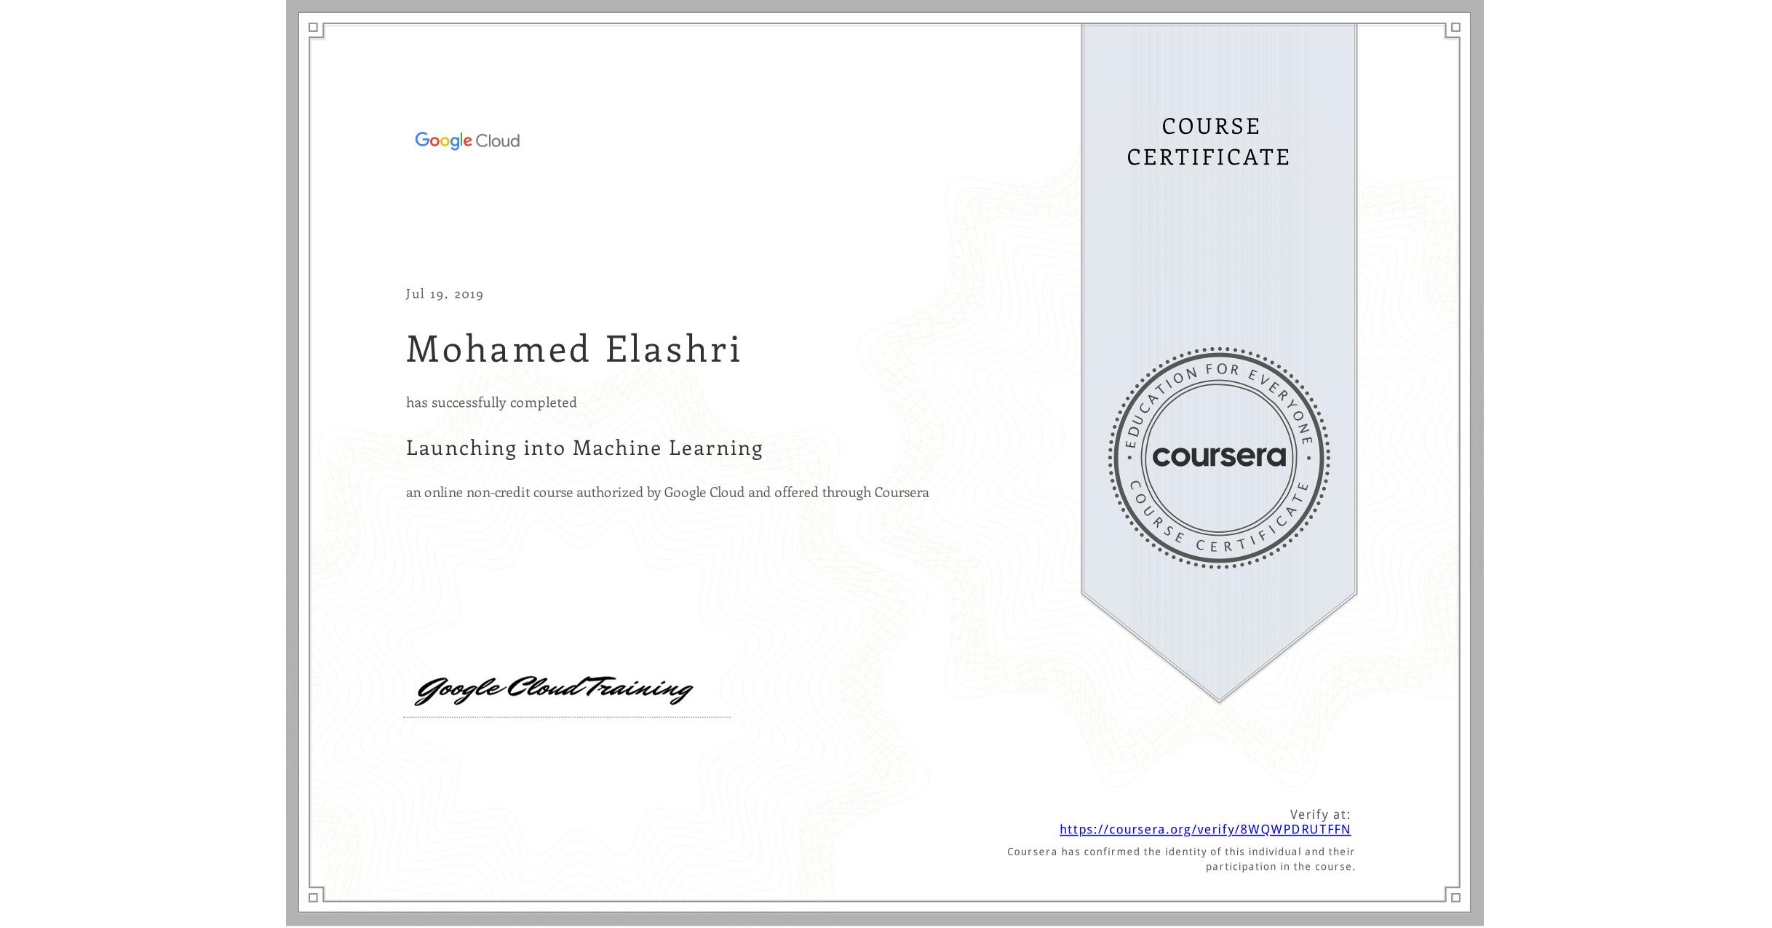 View certificate for Mohamed Elashri, Launching into Machine Learning, an online non-credit course authorized by Google Cloud and offered through Coursera